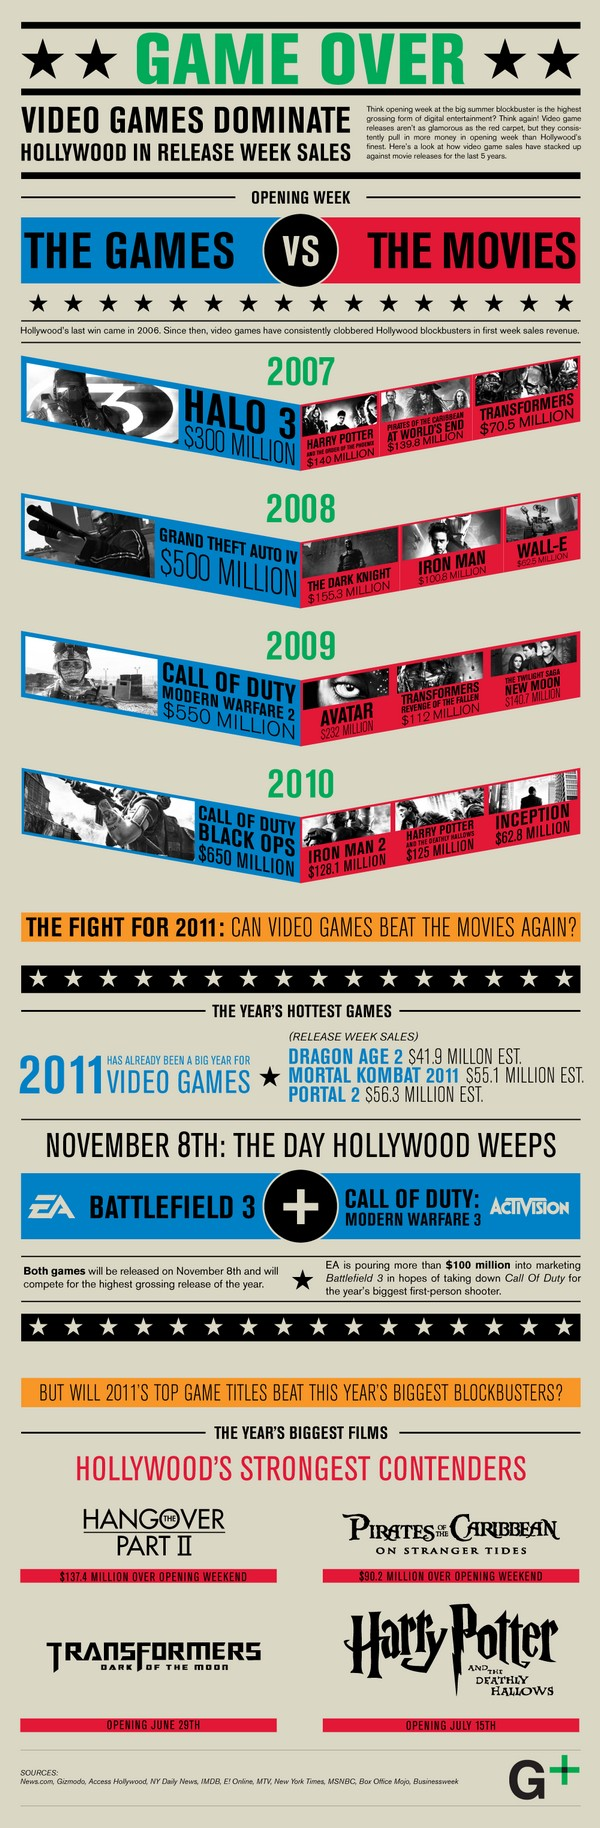 Video Games Vs. Movies